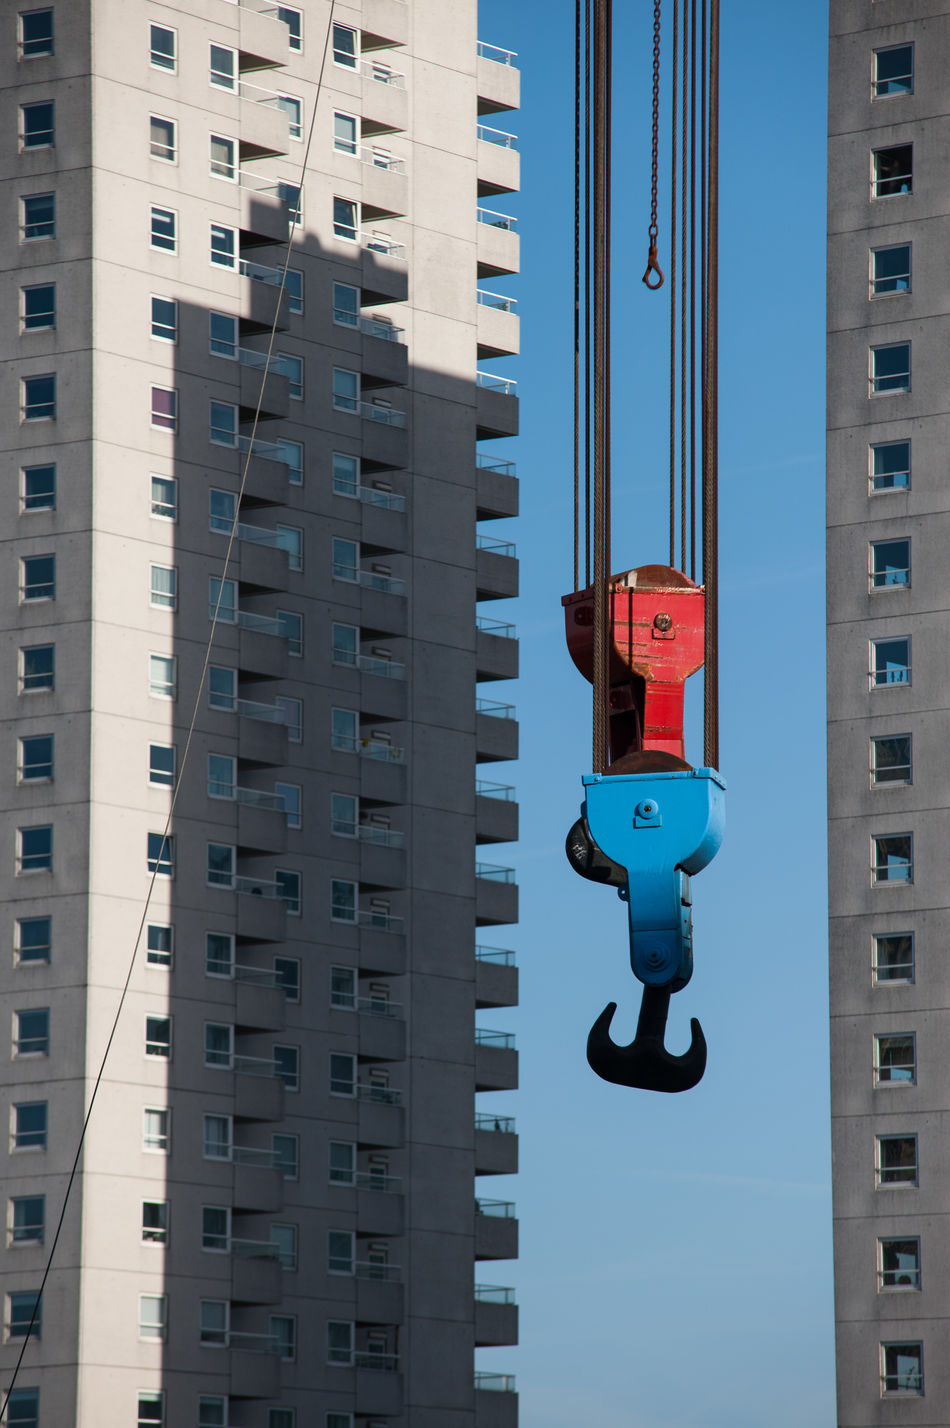 Red and blue Architecture Building Exterior Built Structure City Clear Sky Color Colorful Contrast Crane Day Industrial Modern No People Outdoors Shadow Sky Skyscraper